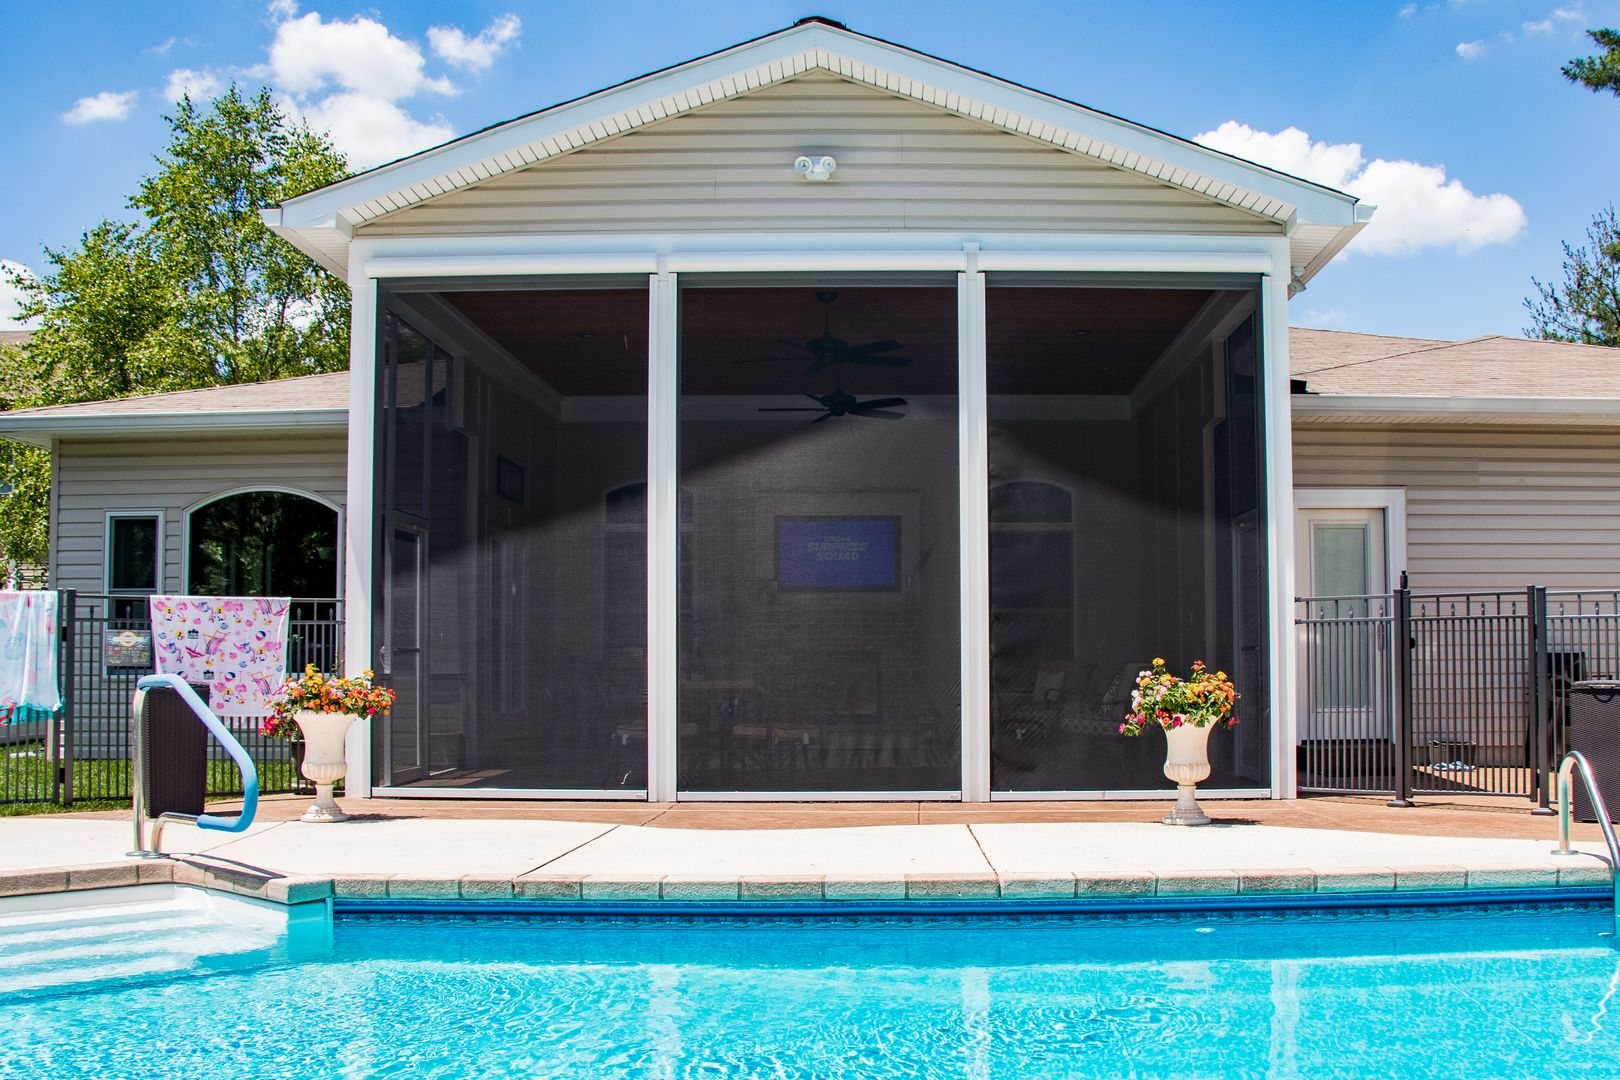 retractable screens on a room addition